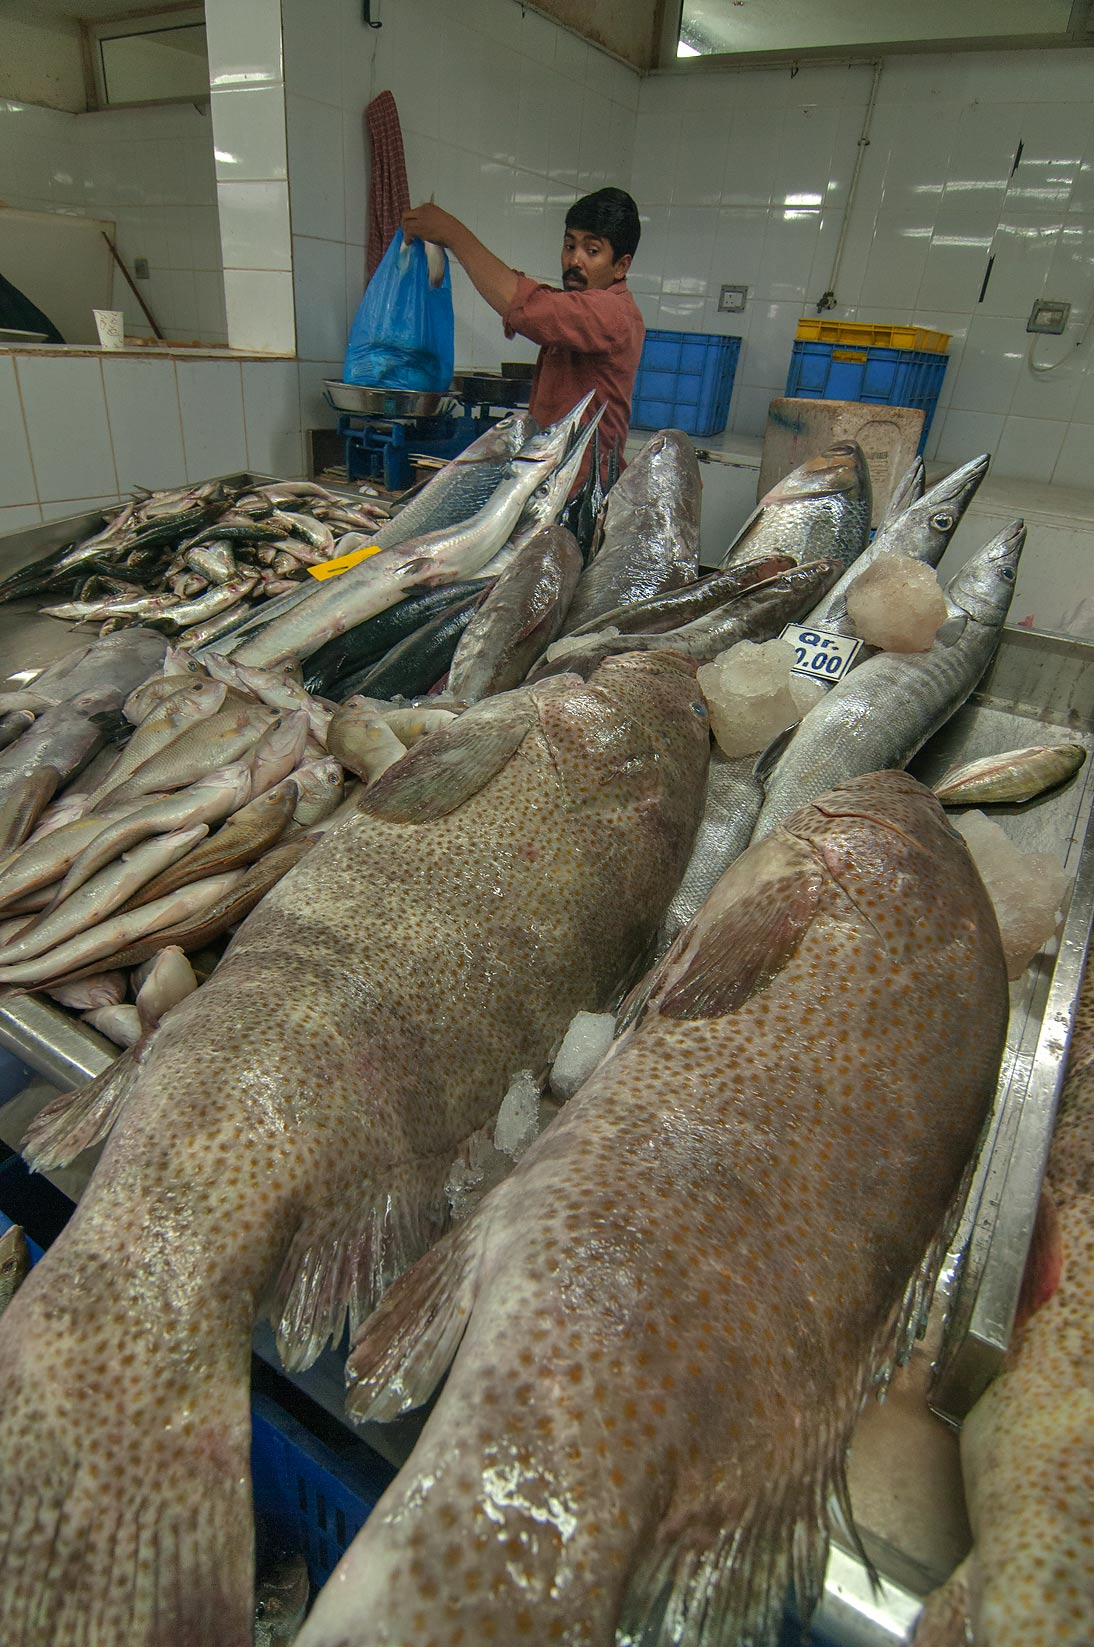 Weighting fish in Fish Market, Wholesale Markets area in Abu Hamour. Doha, Qatar